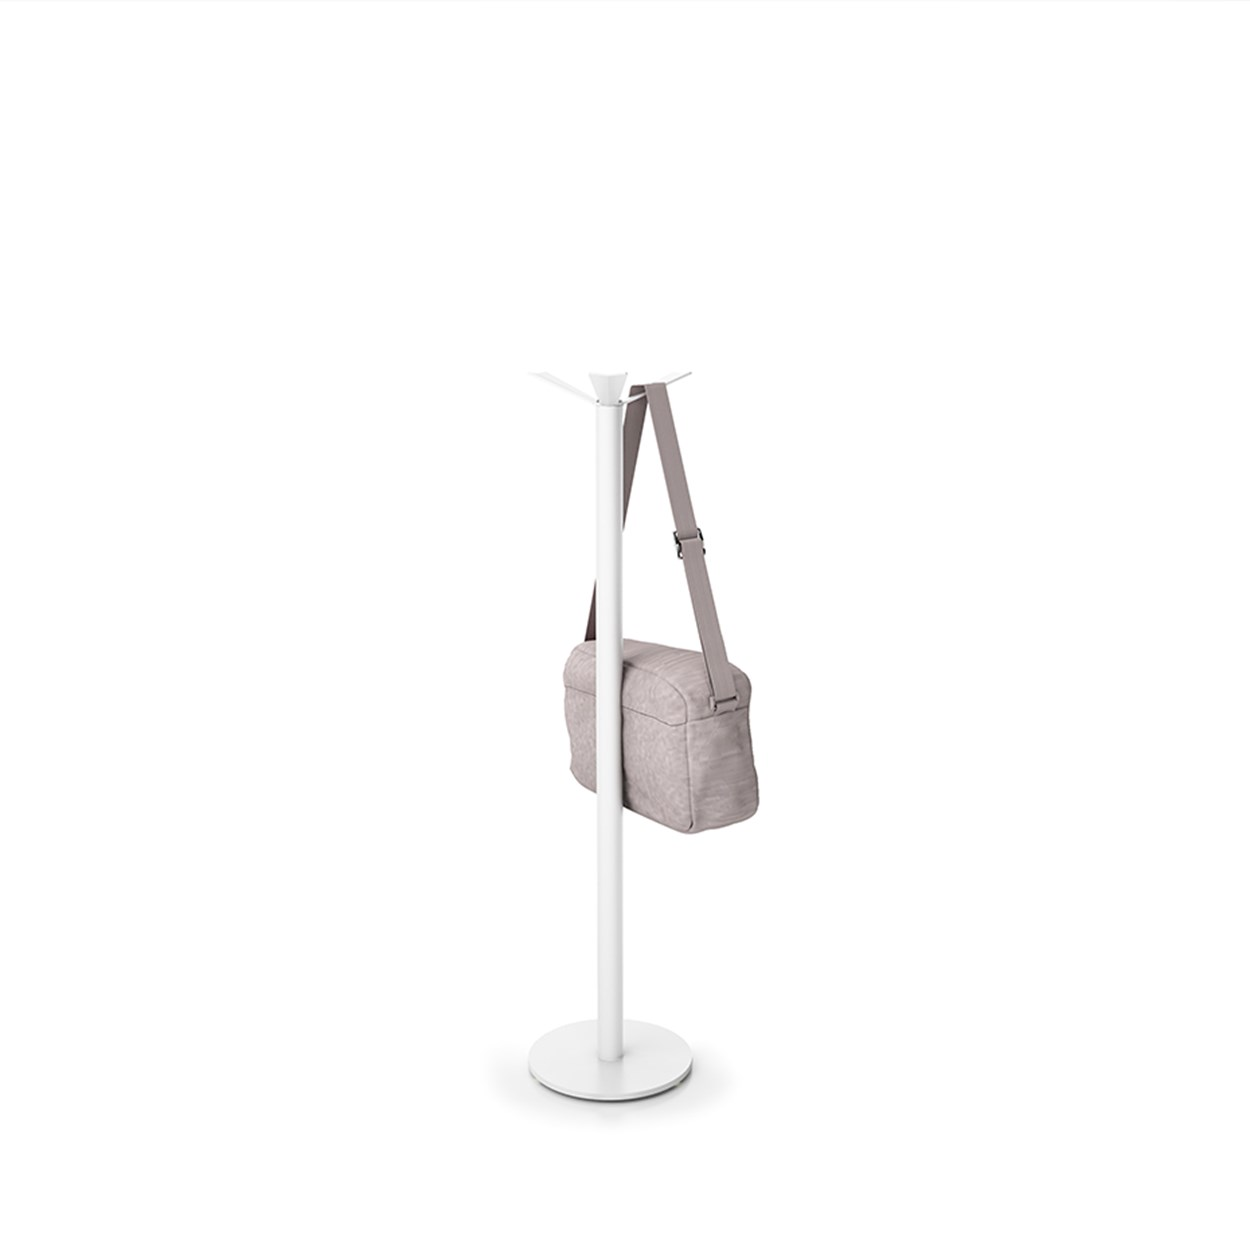 systemtronic-elica-coatrack-02.jpg